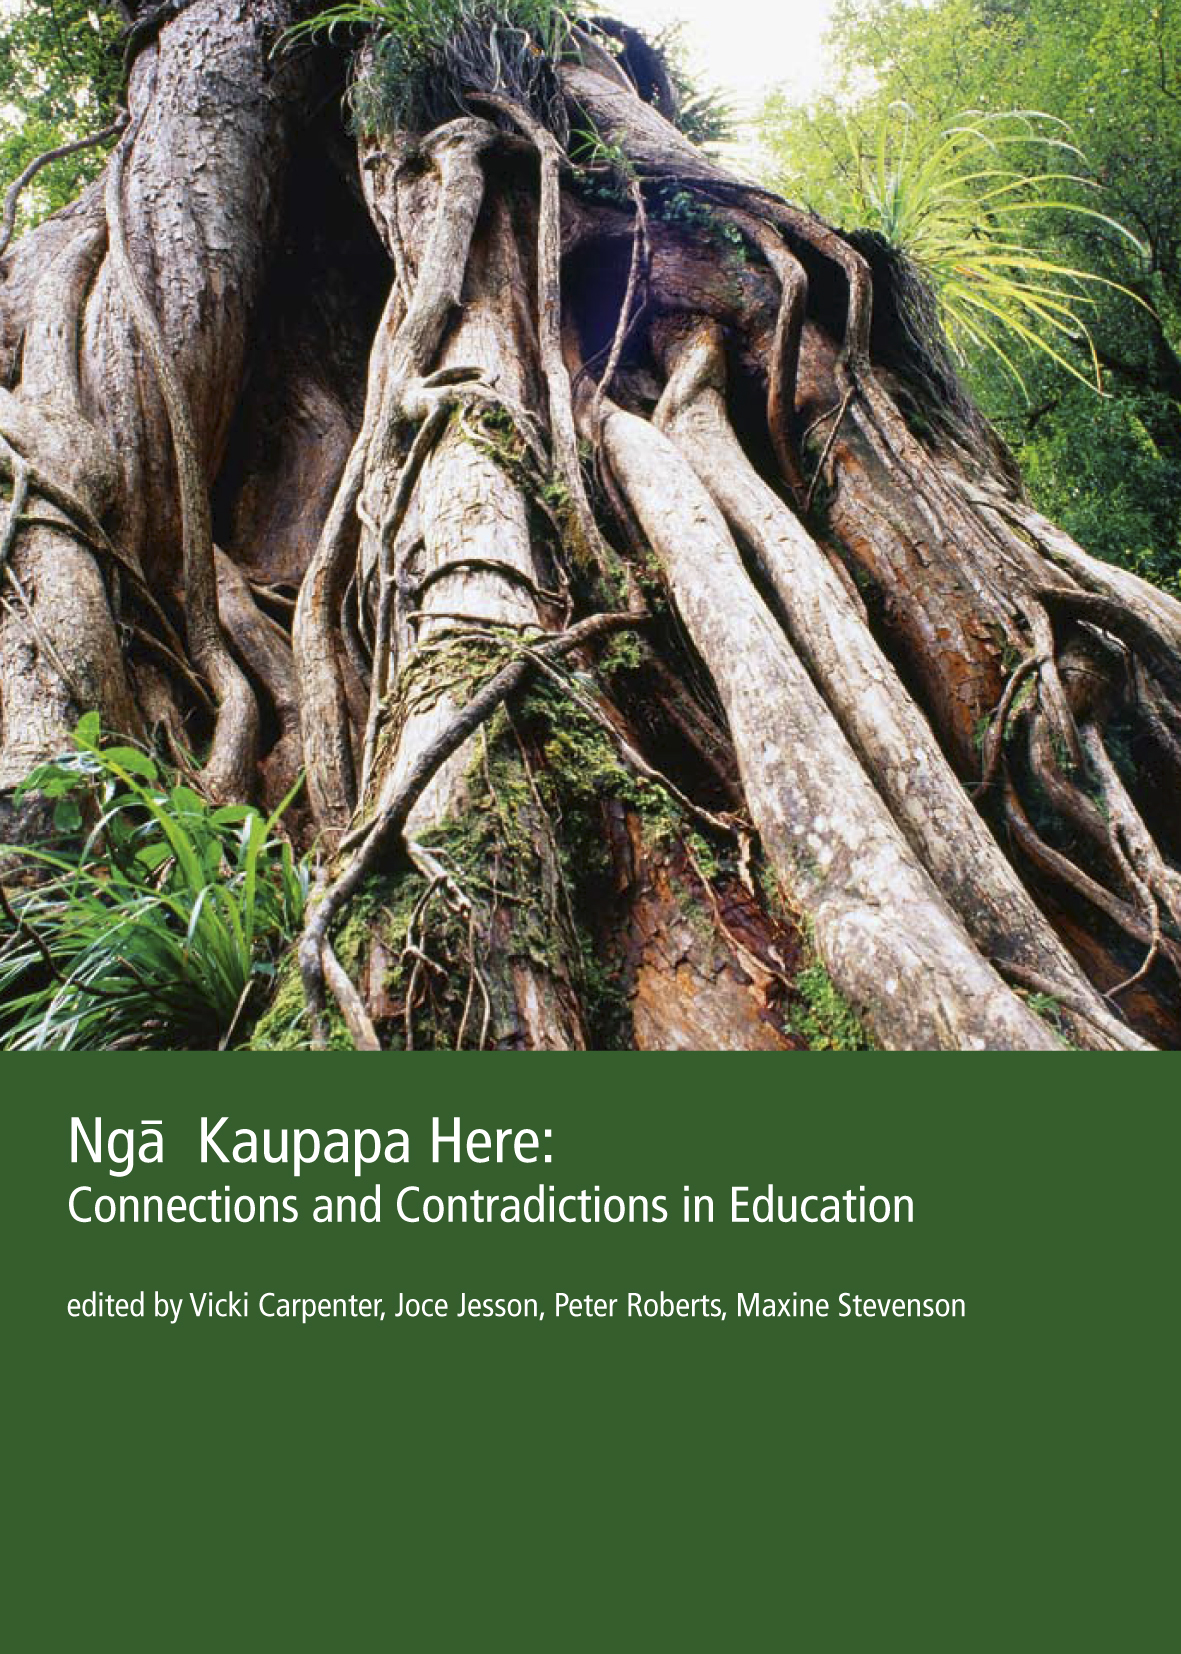 Ngā kaupapa here: Connections and Contradictions in Education - 9780170135283